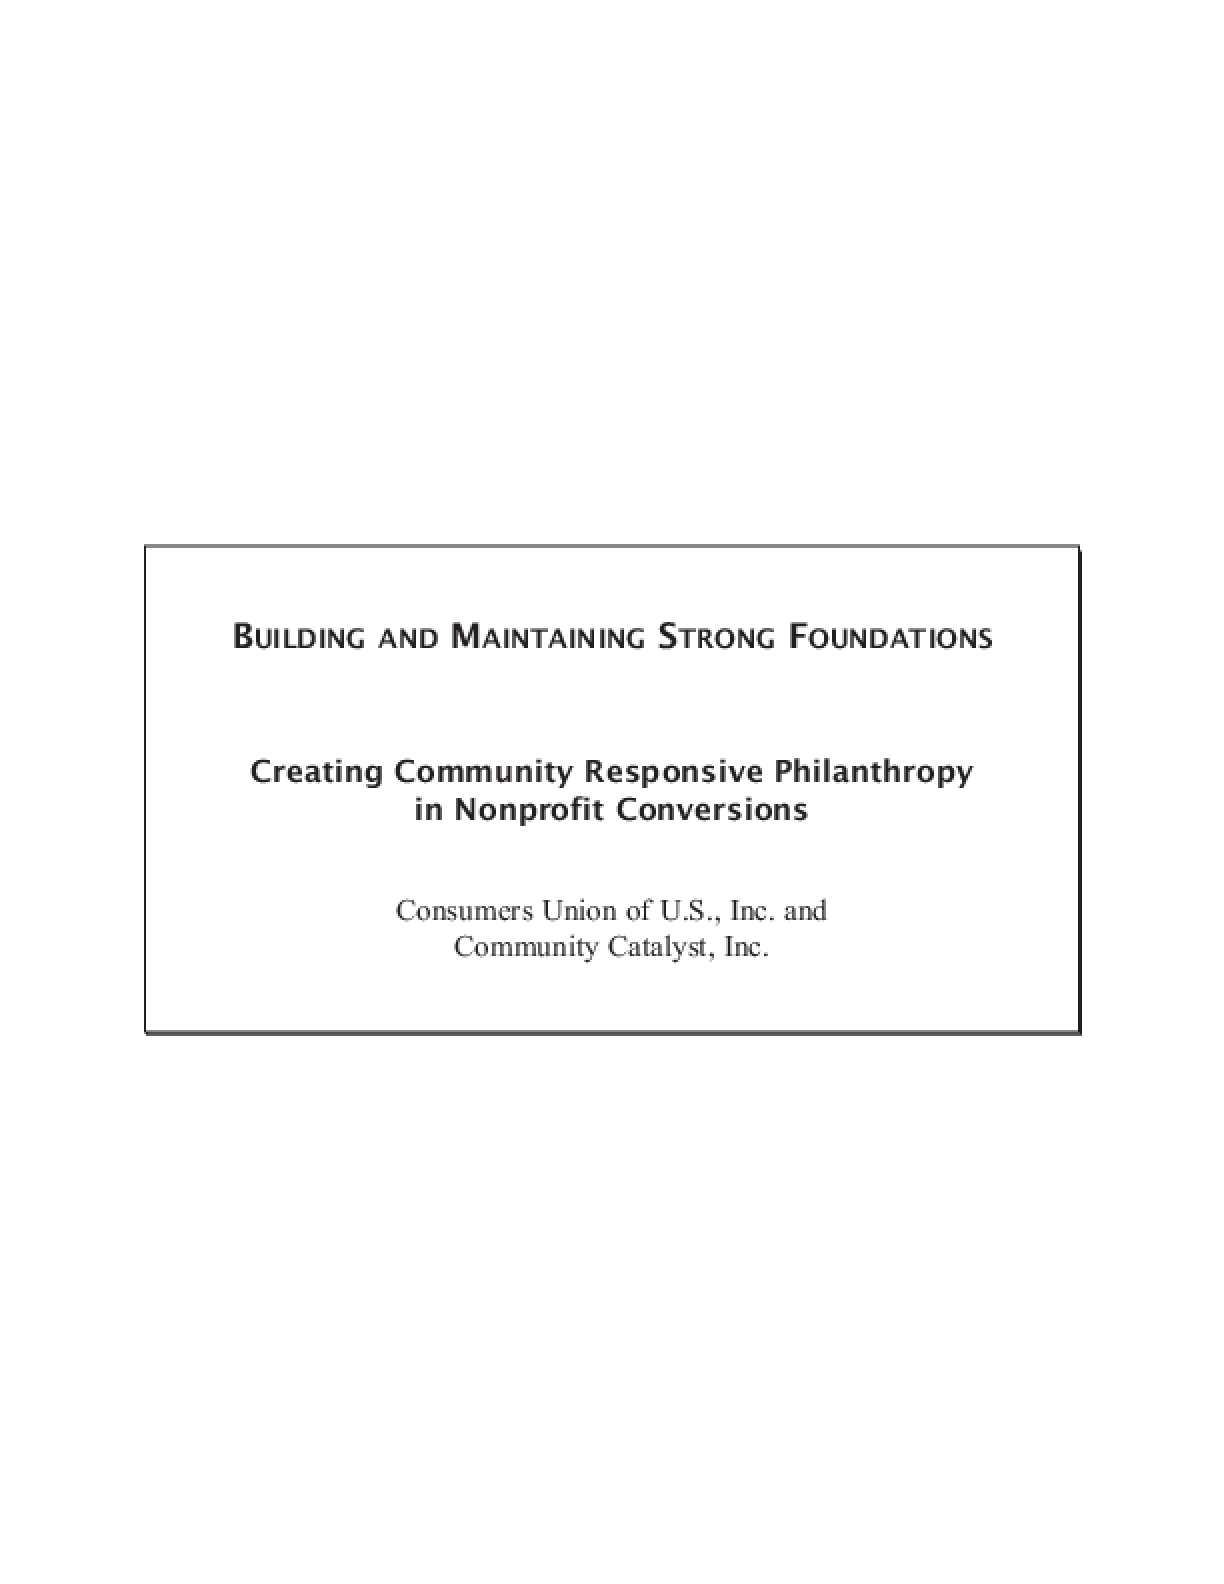 Building and Maintaining Strong Foundations: Creating Community Responsive Philanthropy in Nonprofit Conversions